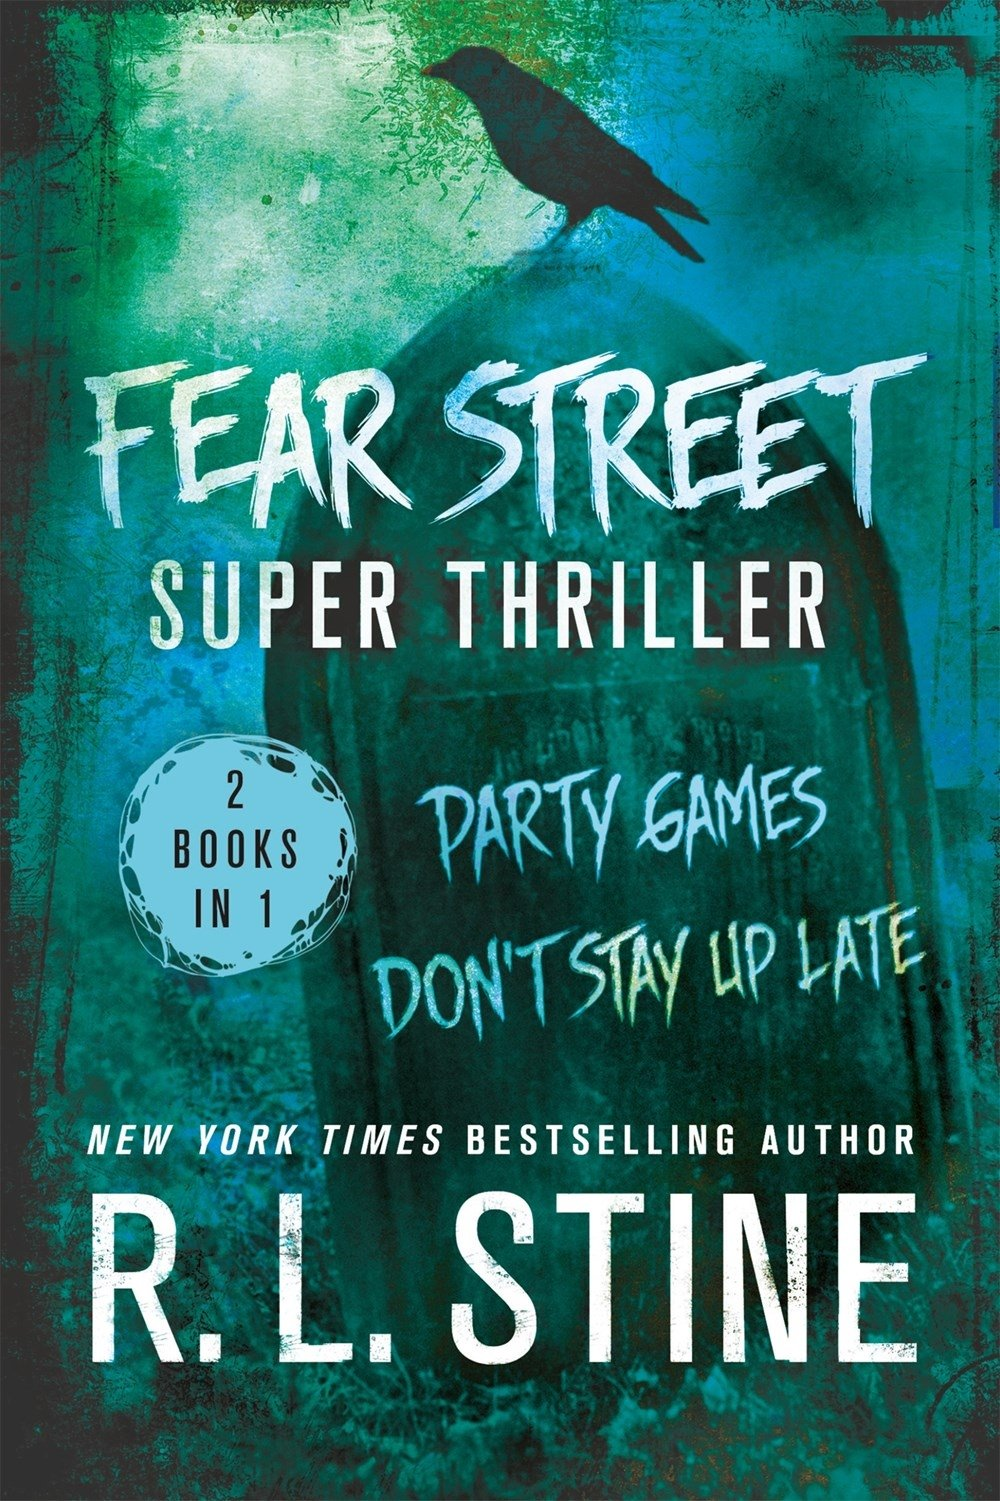 Fear Street Super Thriller: Party Games & Don't Stay Up Late ebook